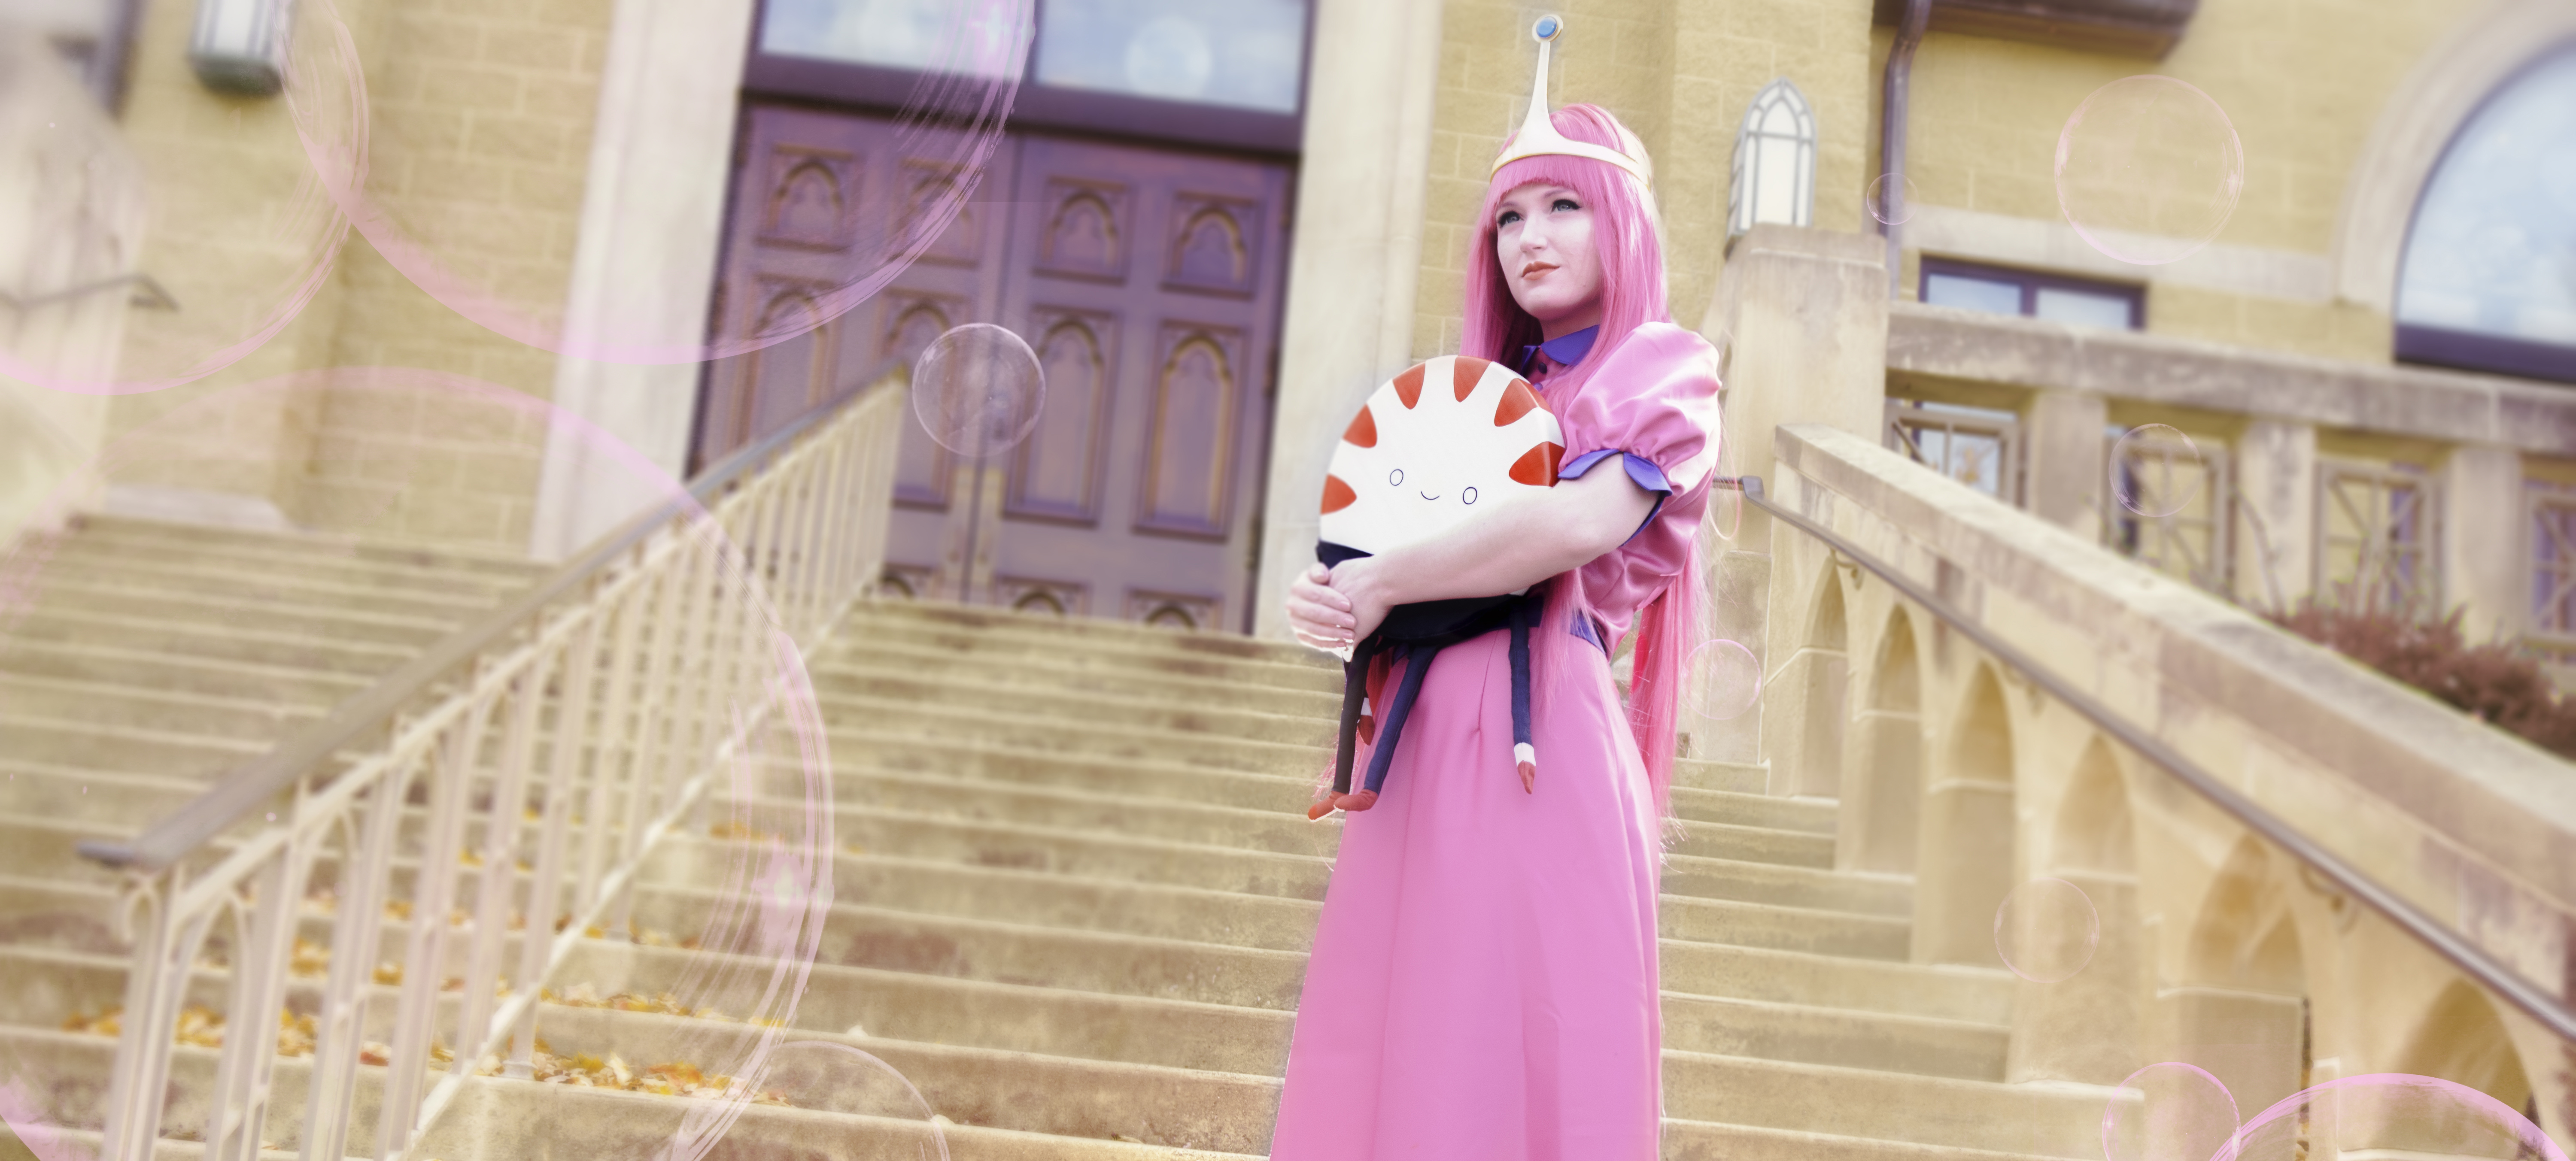 ... Princess Bubblegum u2013 Adventure Time  sc 1 st  Termina Cosplay & princess bubblegum cosplay | Termina Cosplay